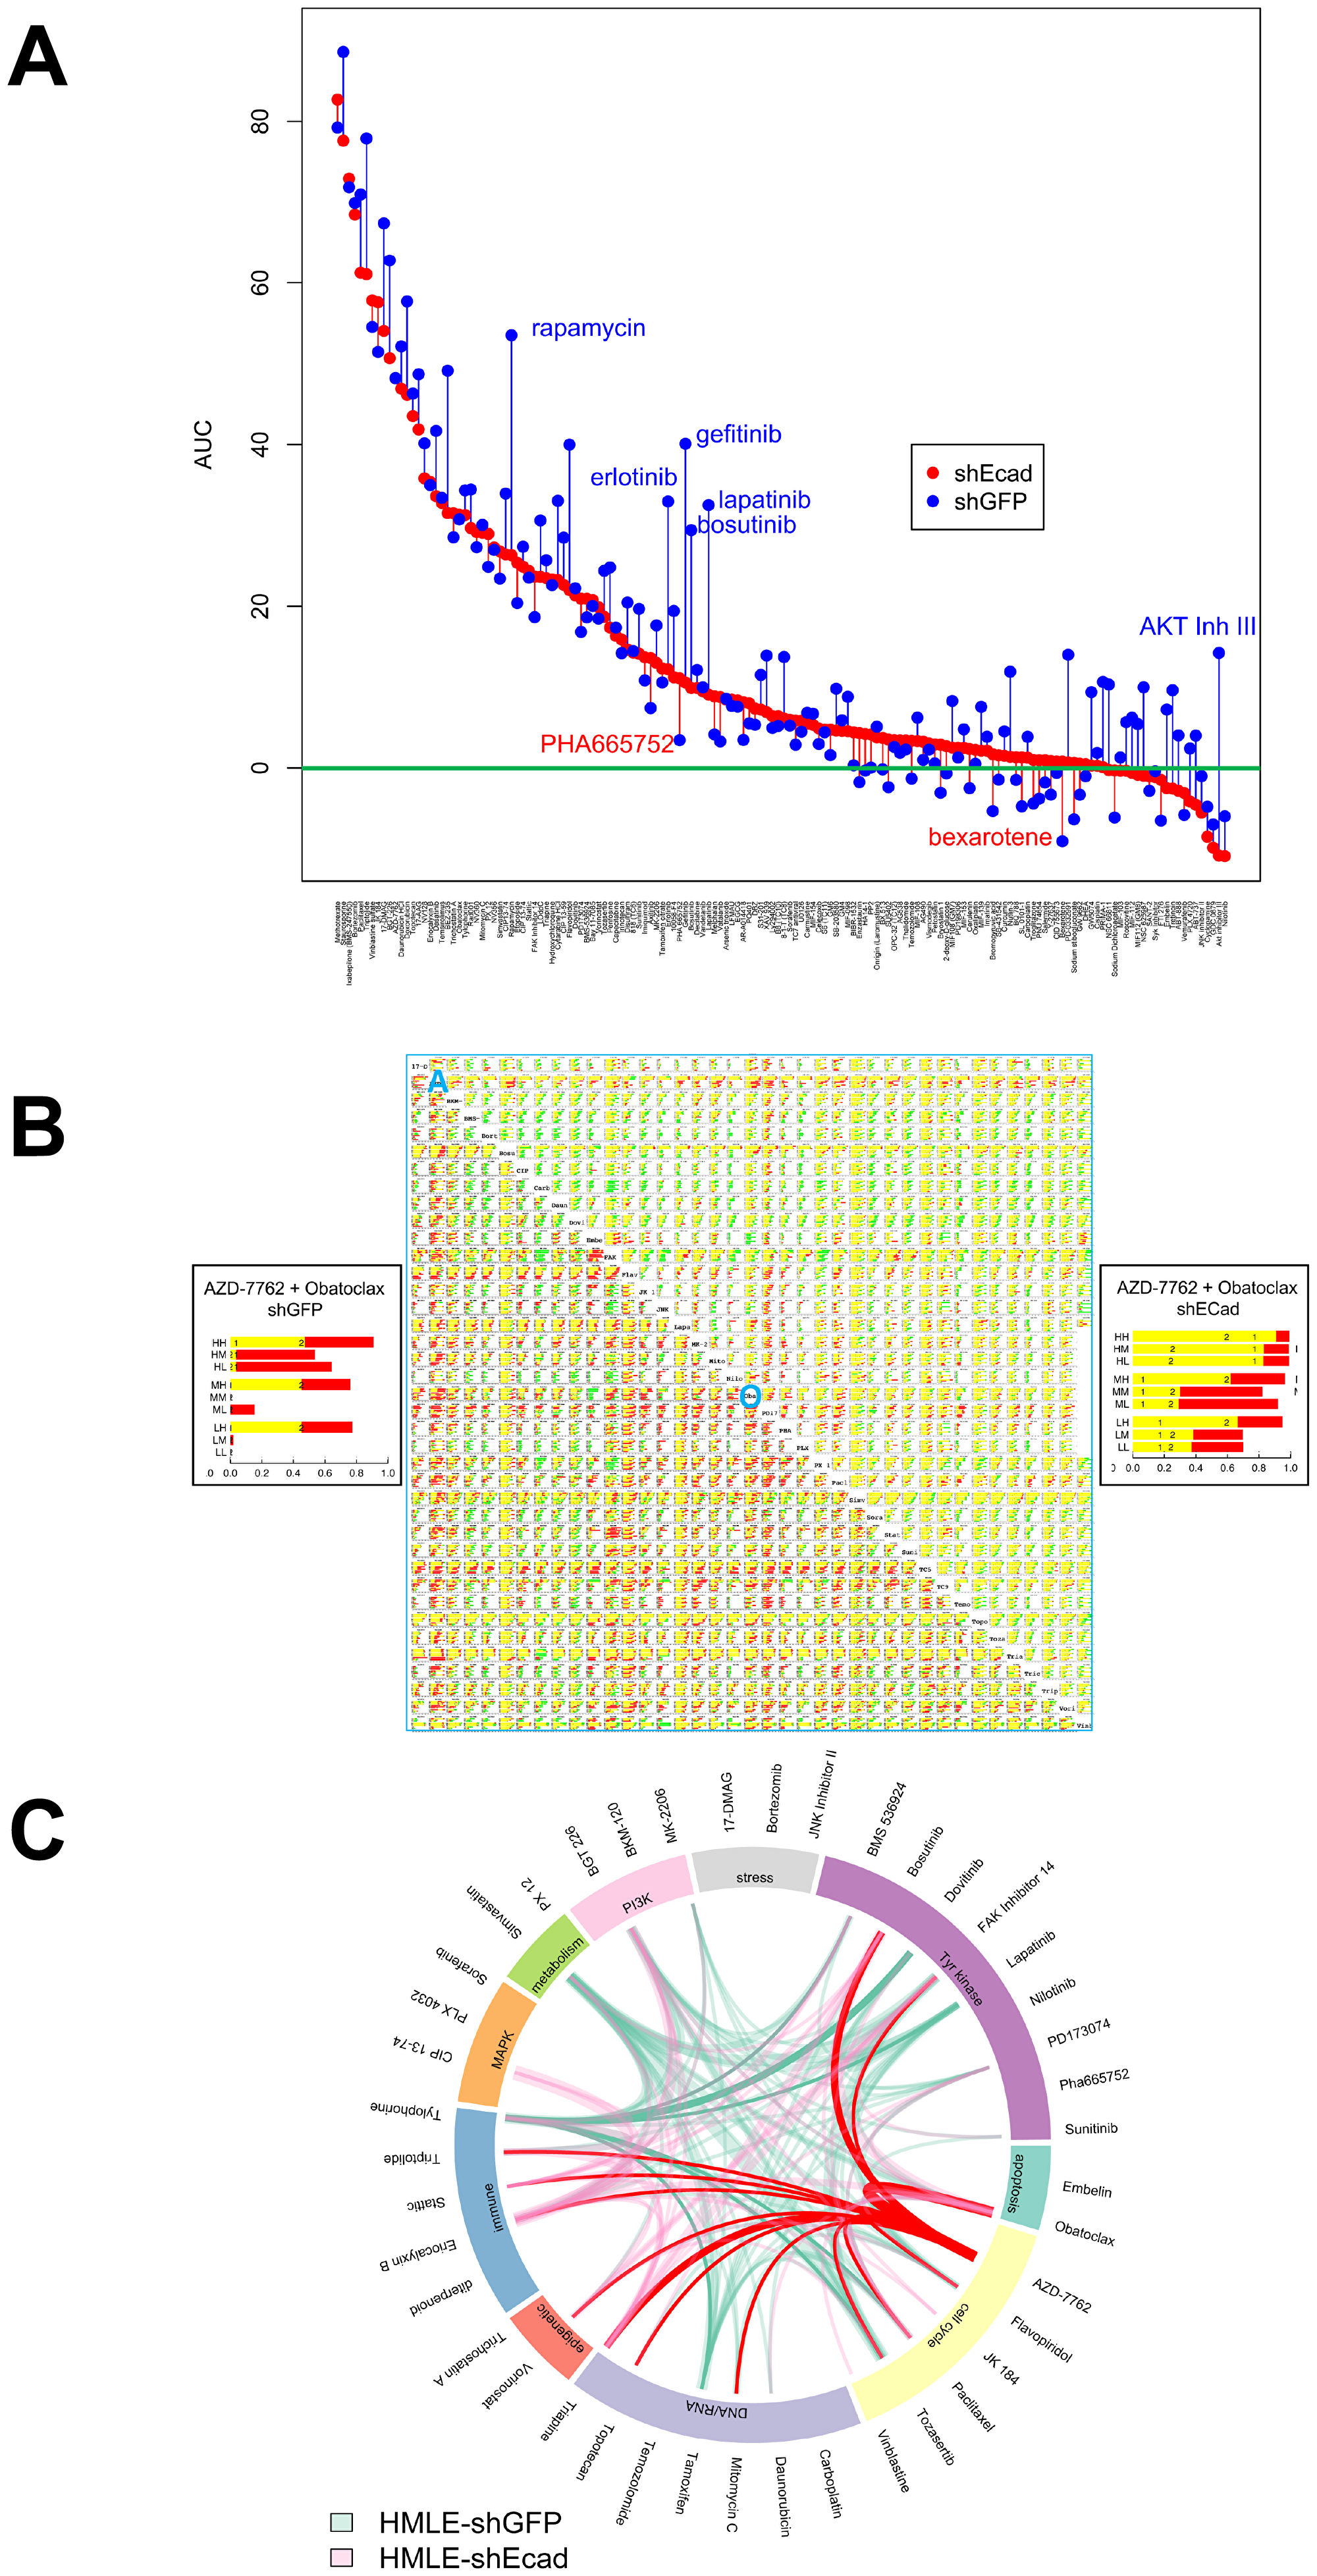 Single agent and combinatorial drug sensitivity of HMLE-shEcad (red) and HMLE-shGFP (blue).